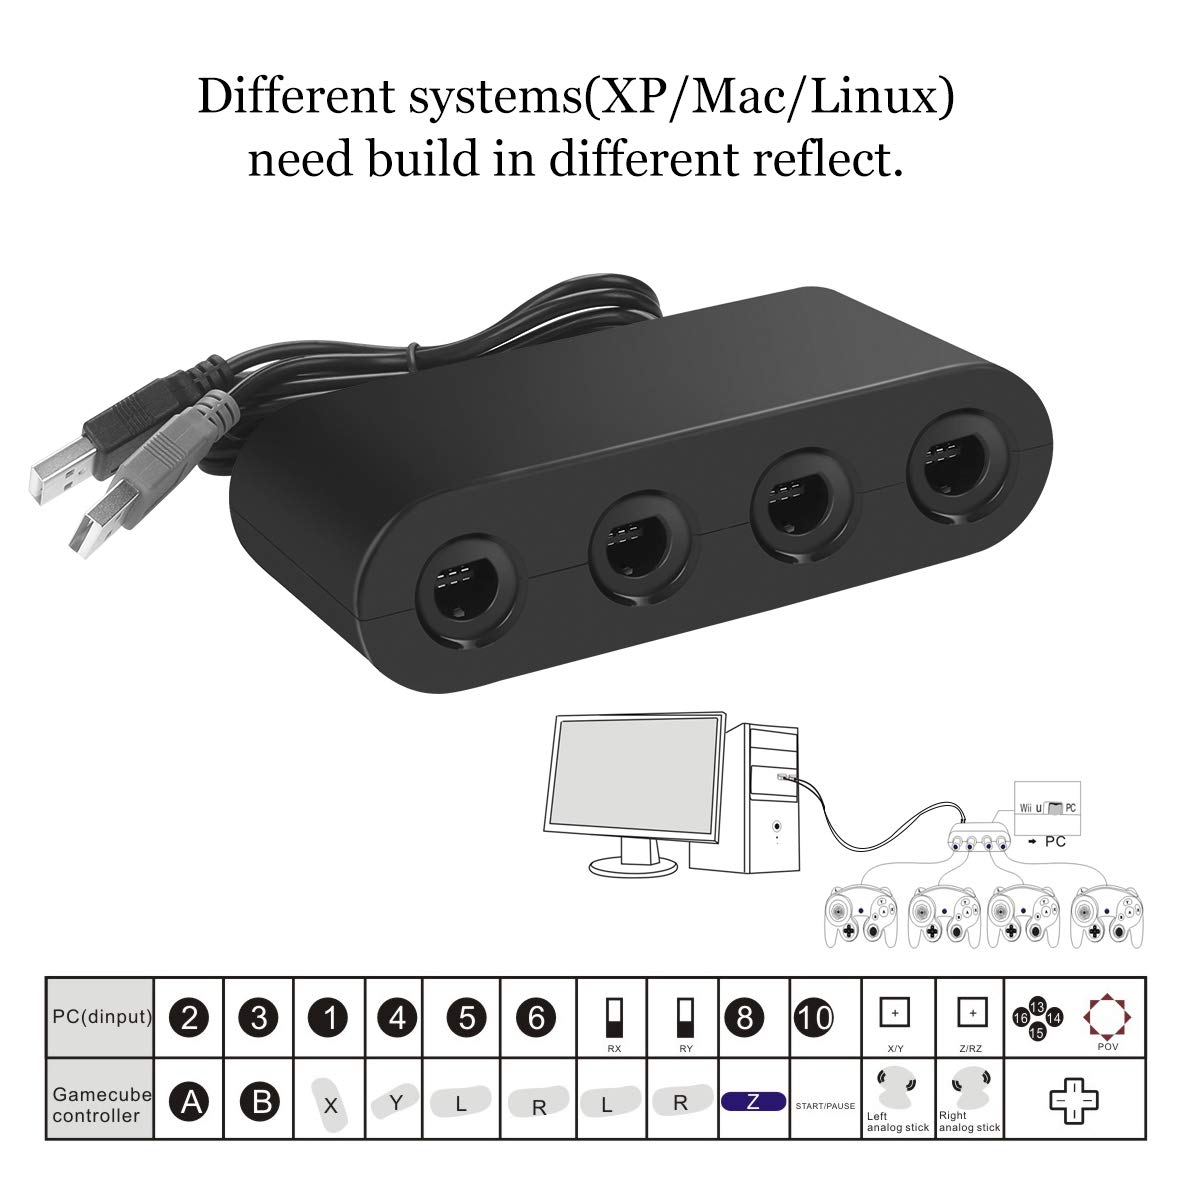 Gamecube Controller Adapter,Update Gamecube Adapter for Super Smash Bros Ultimate with Vibration, No Driver and No Lag,Support Nintendo Switch/Wii U/PC/Mac,Black